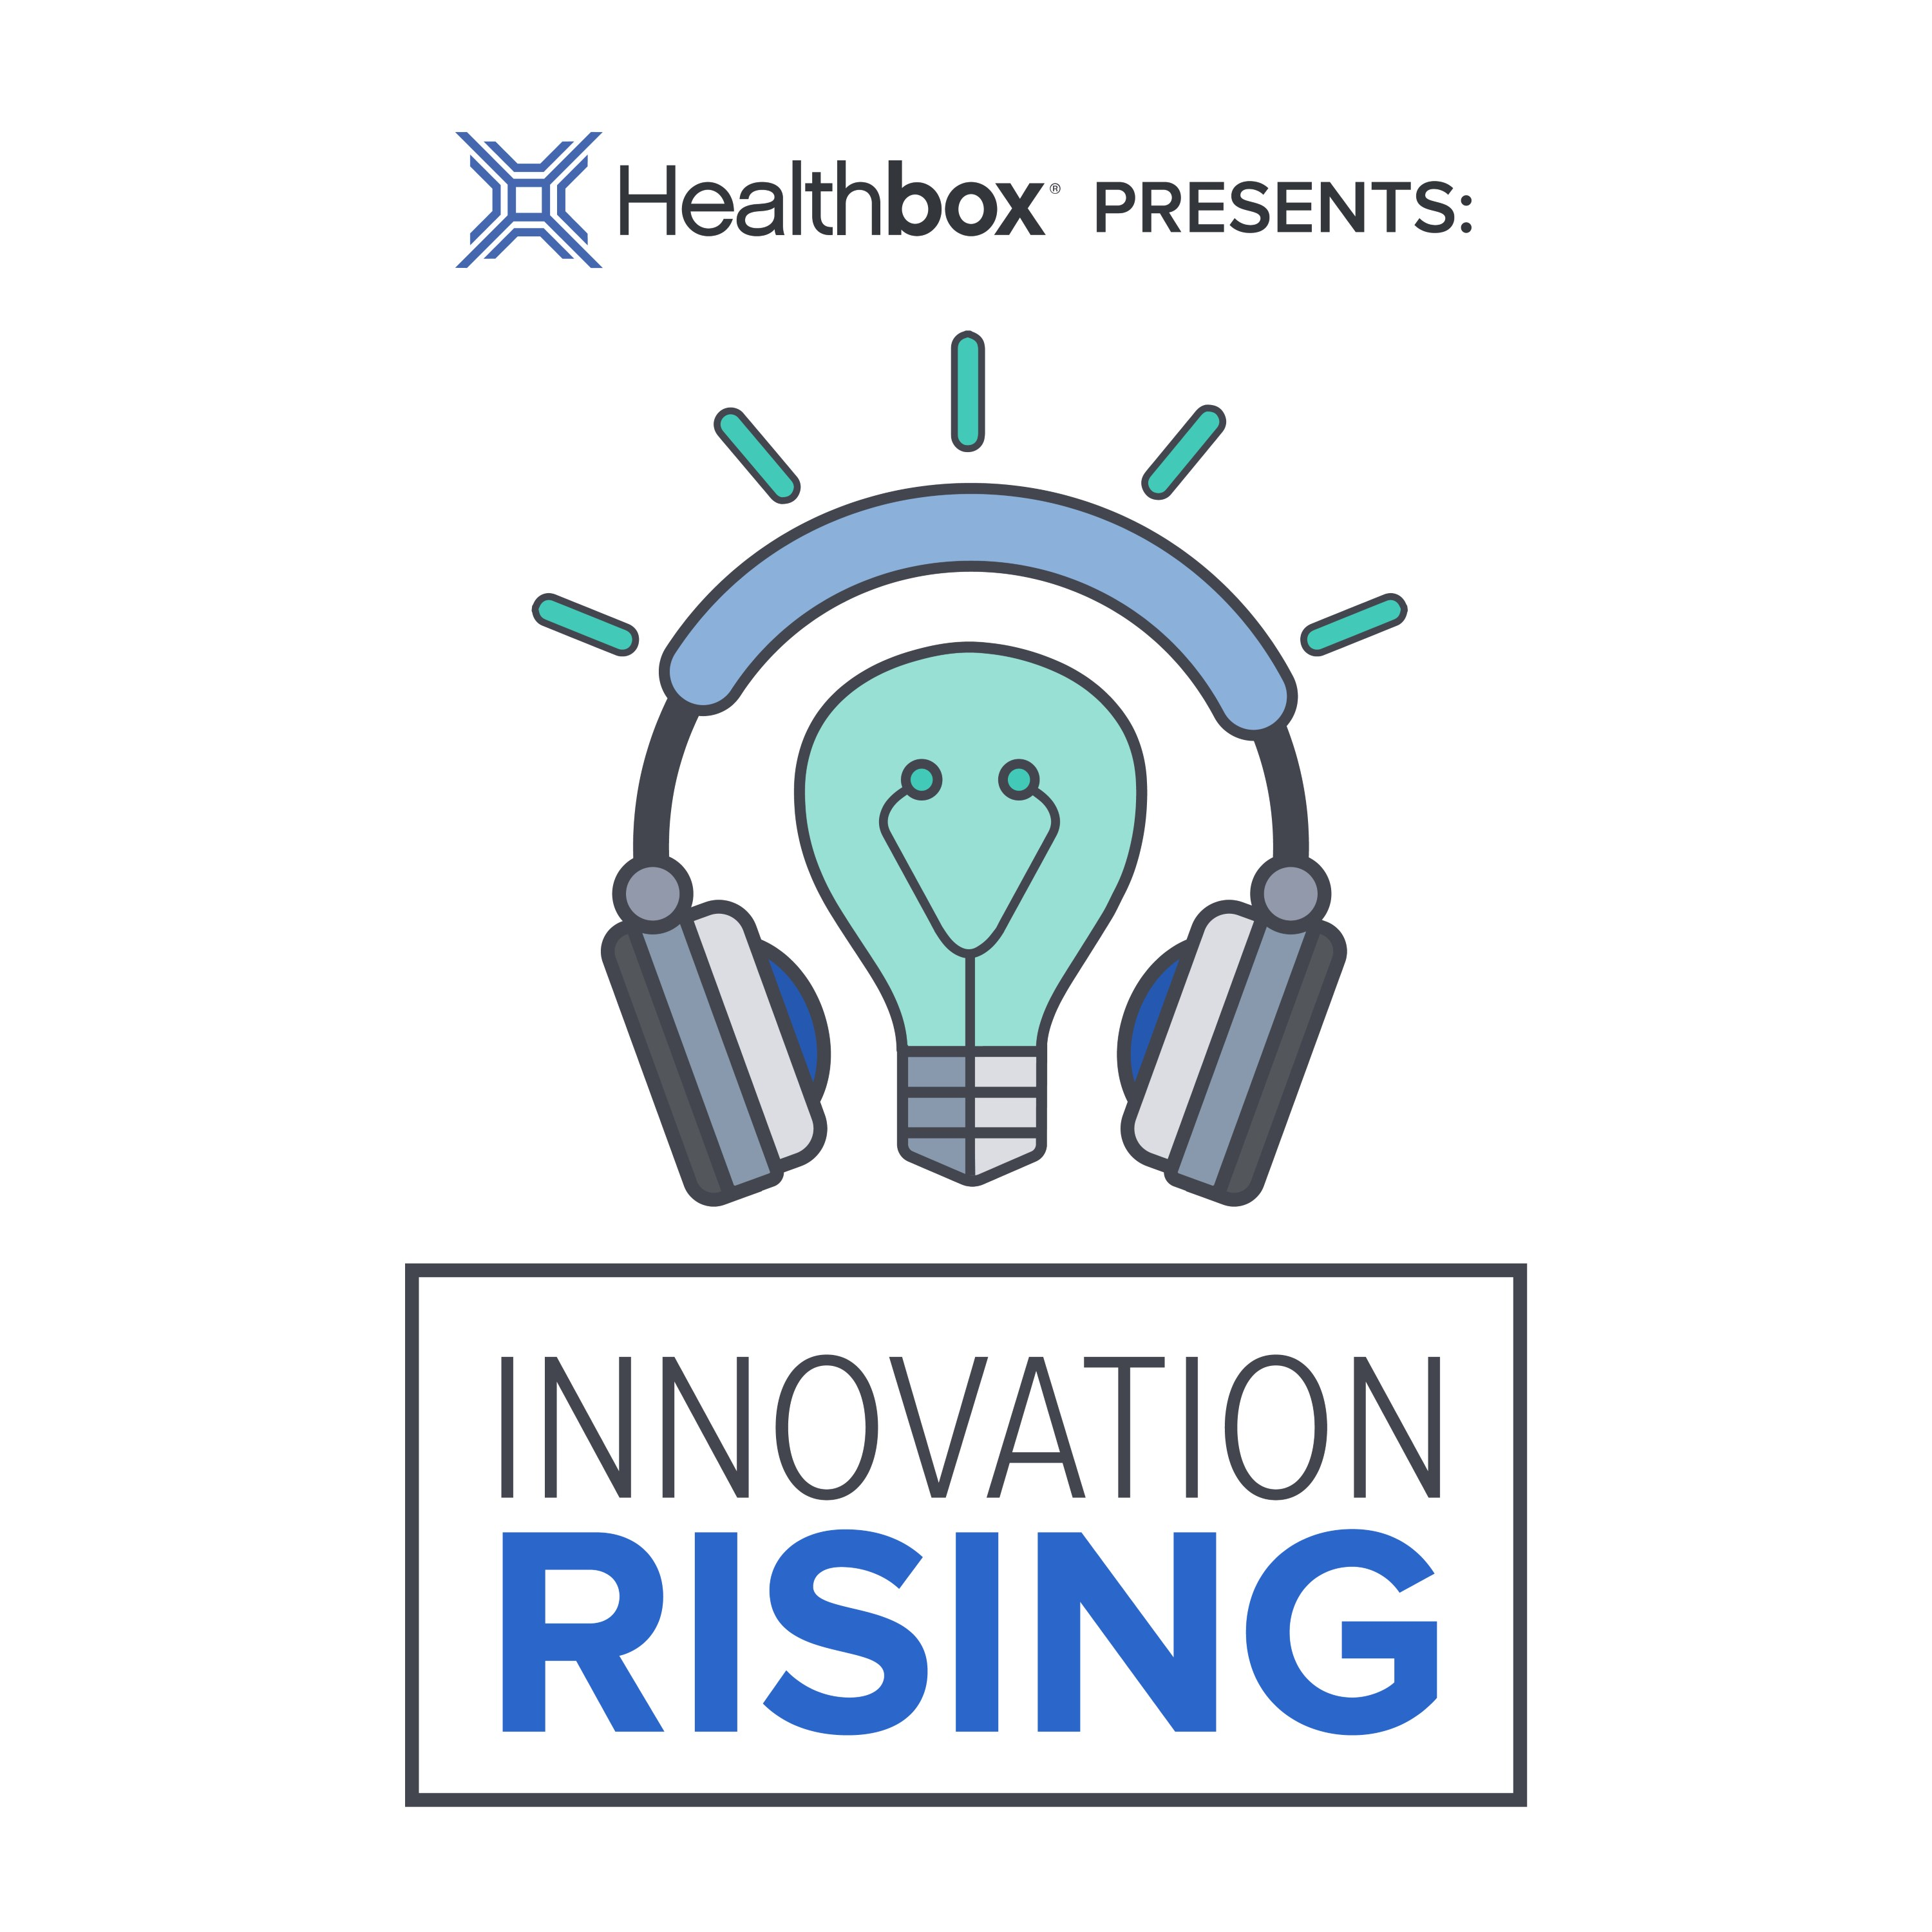 Innovation Rising, Presented by Healthbox